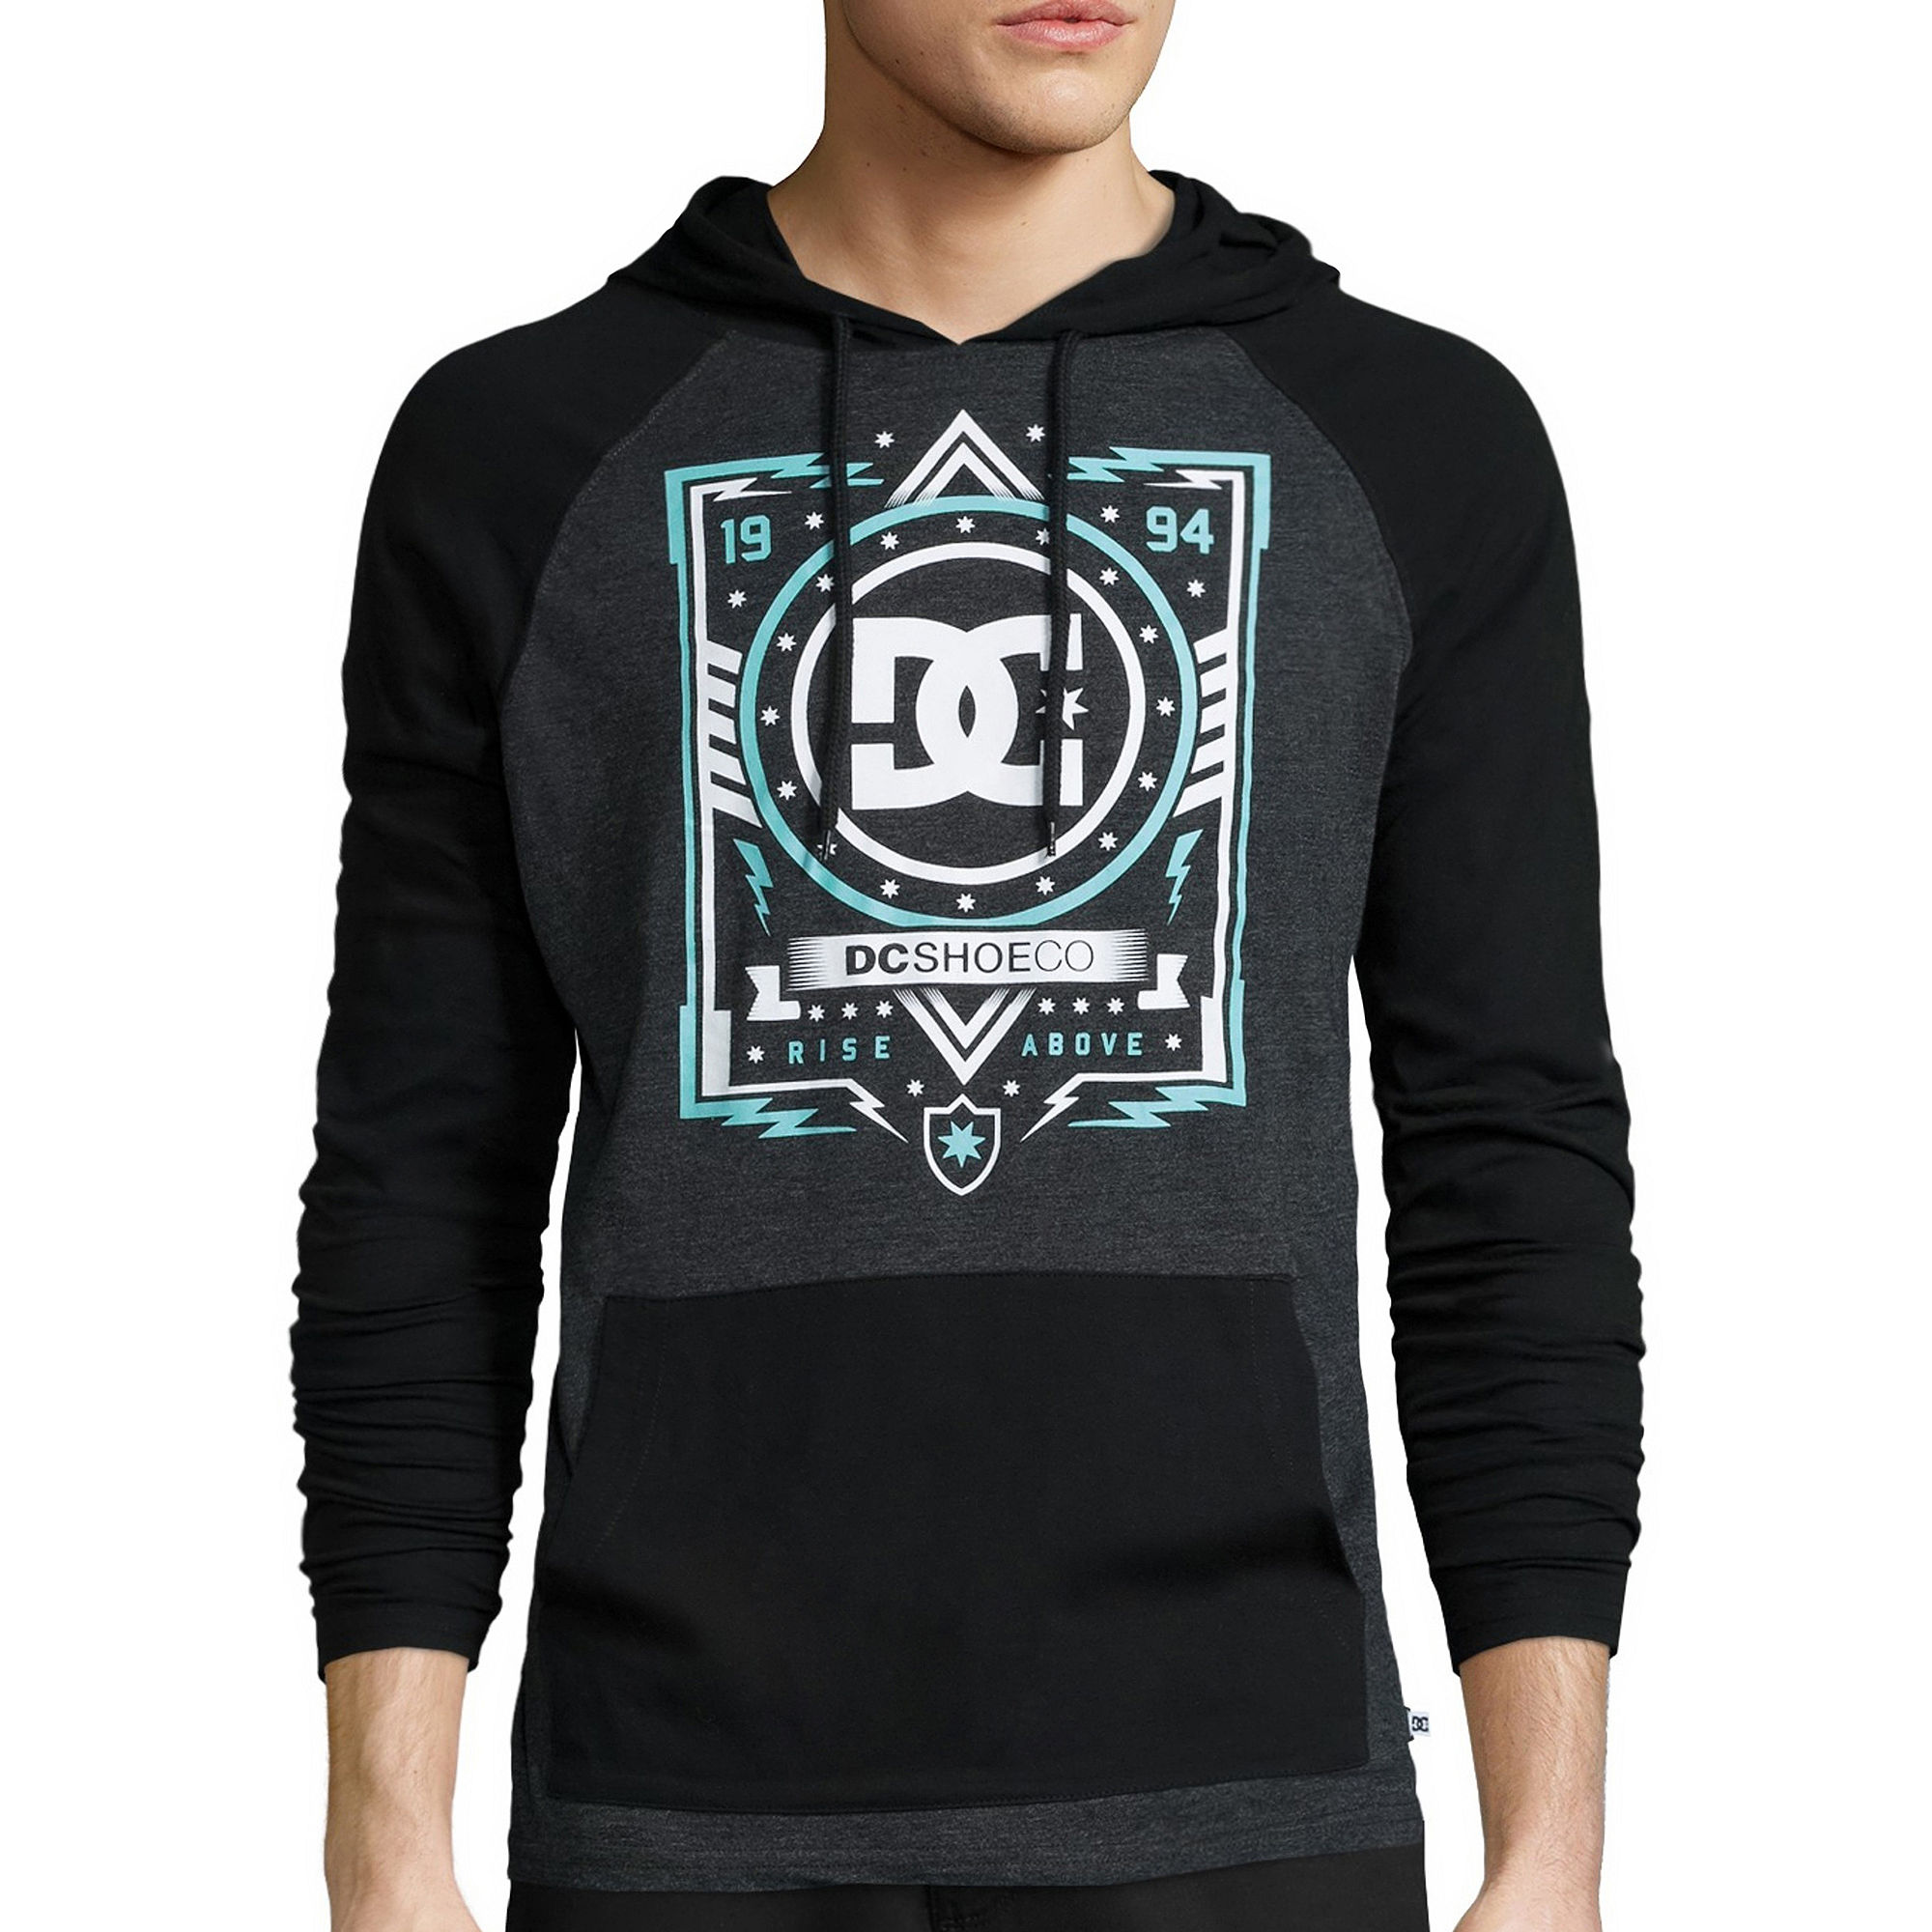 DC Shoes Co. Long-Sleeve Future Athlete Pullover Hoodie